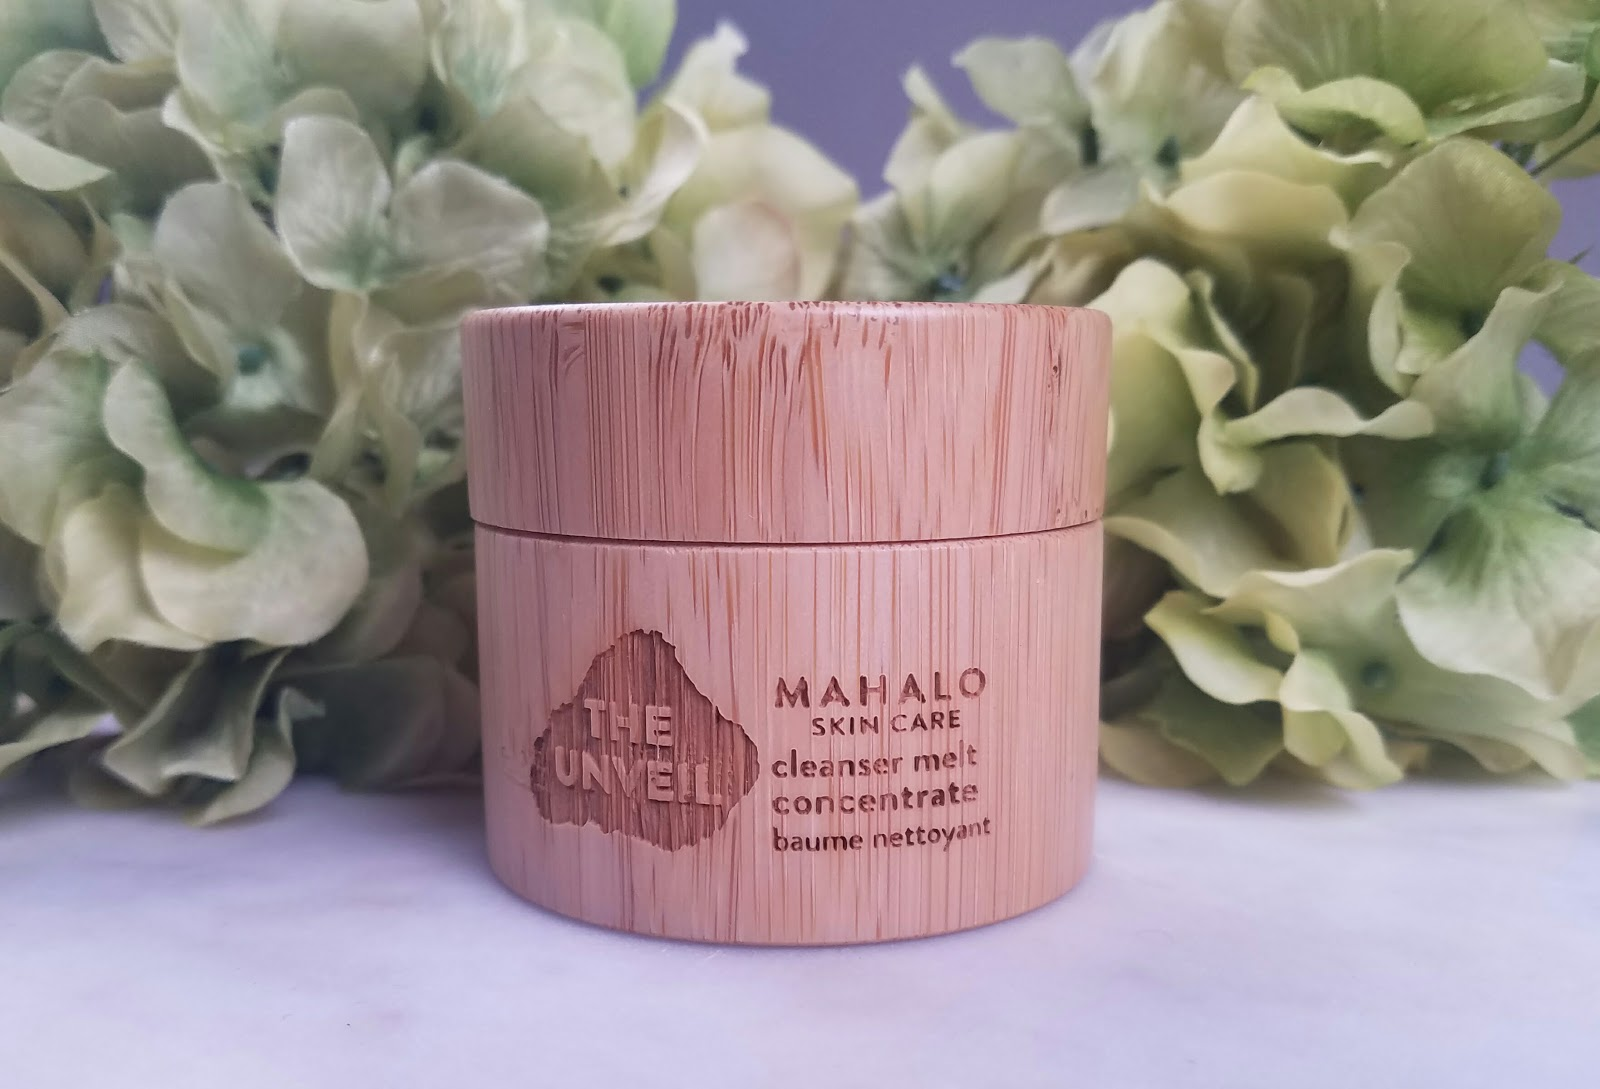 Mahalo: The Unveil Cleanser Melt Concentrate - Christina Alyce Beauty